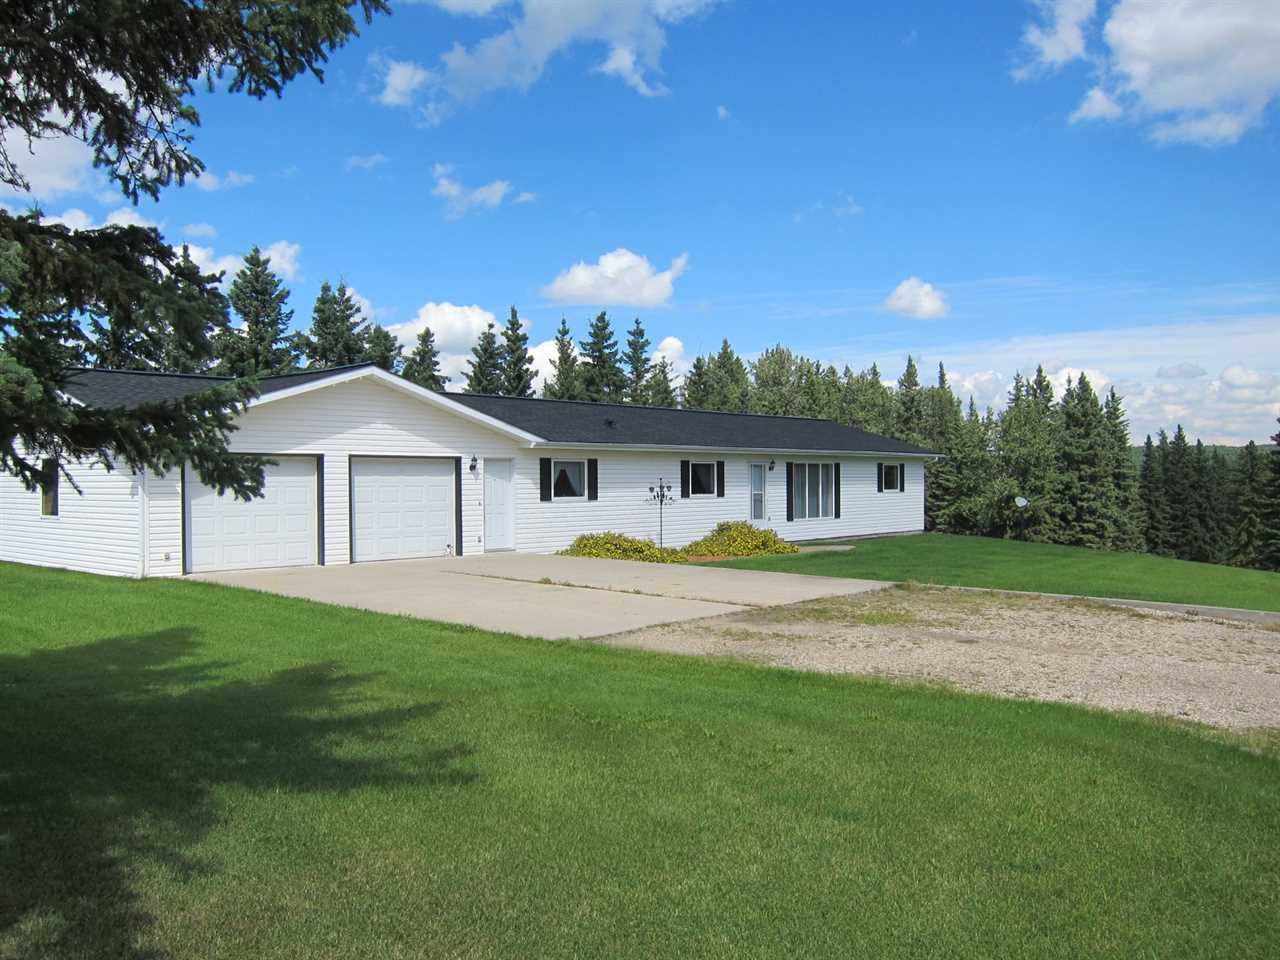 53024 Rge Rd 70 Parkland County, 3 bed, 2 bath, at $608,000